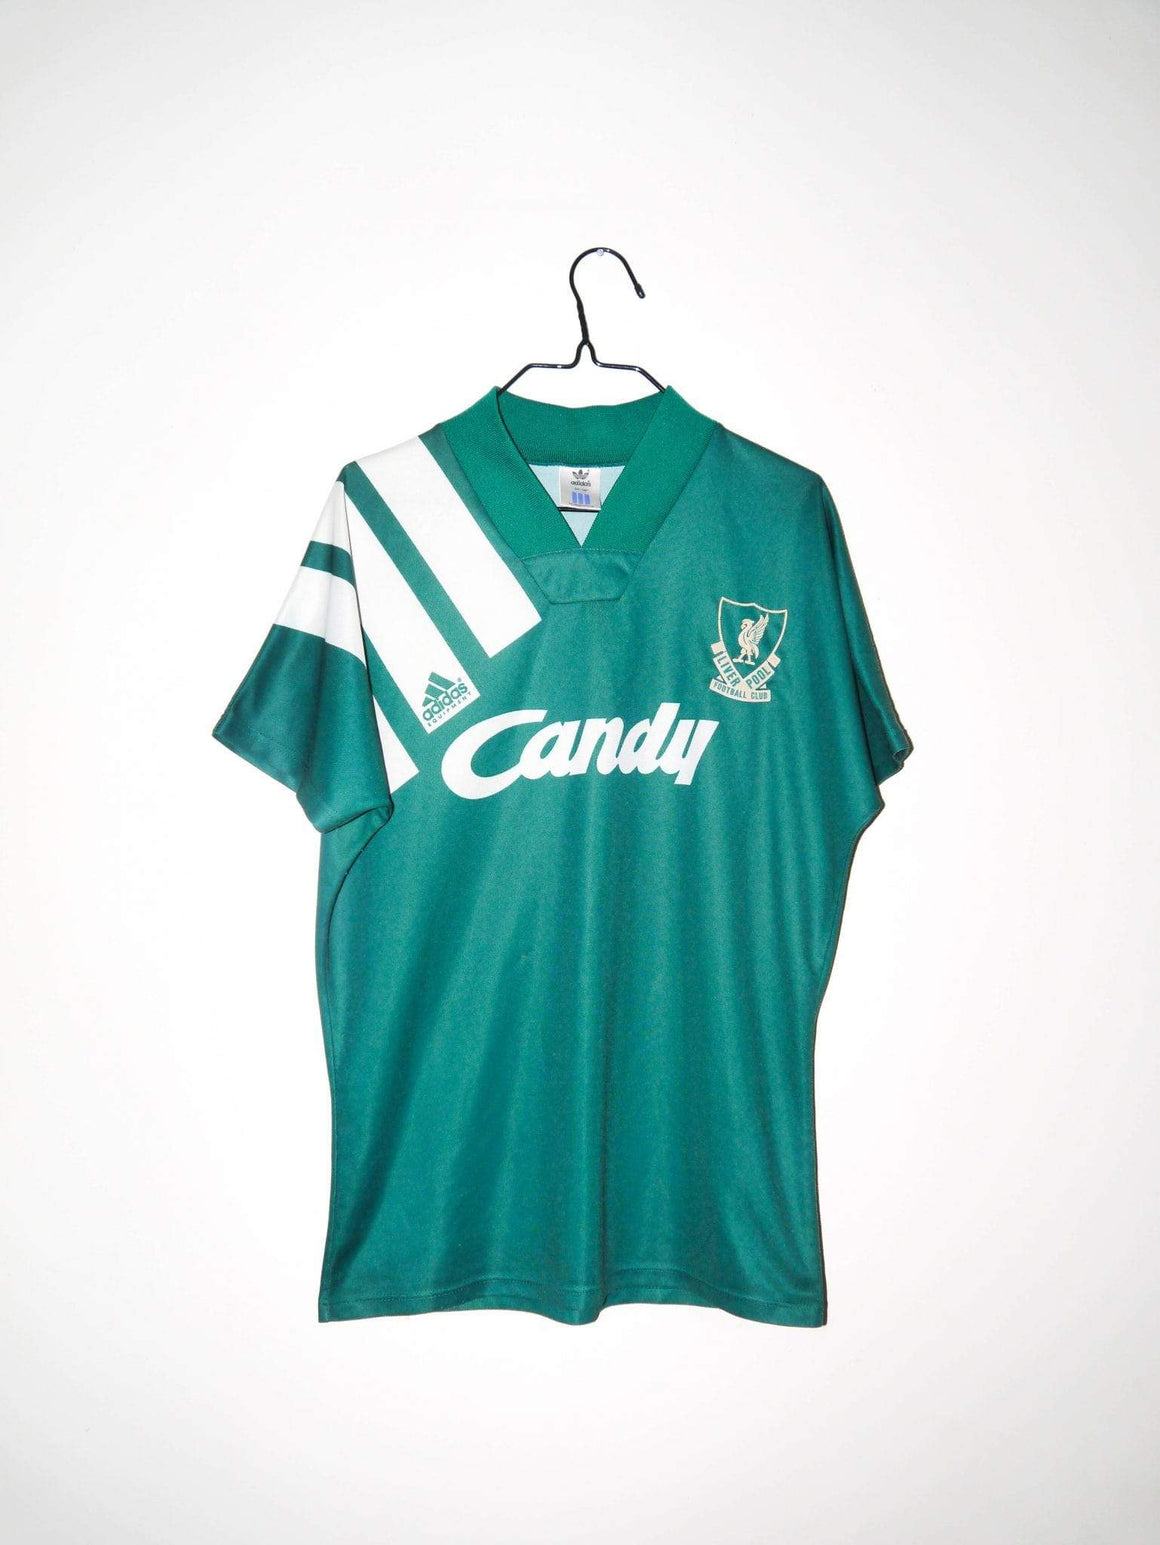 1991-92 Liverpool FC away shirt - Football Shirt Collective